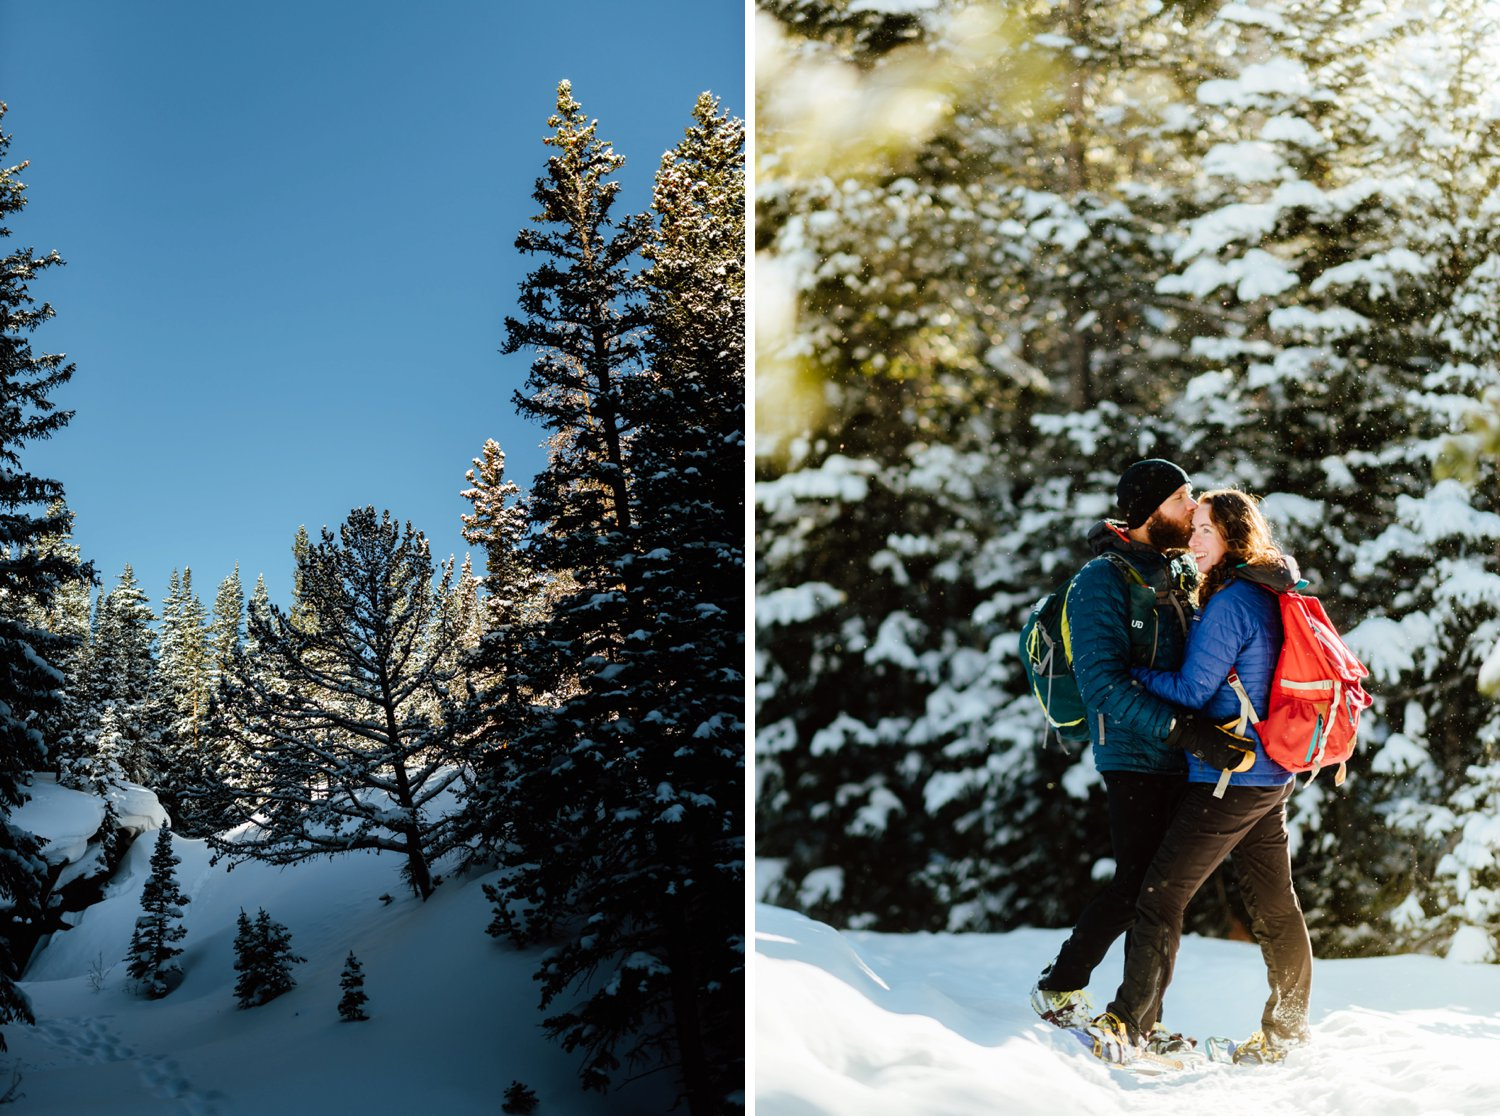 How beautiful is this snowy mountain forest in Indian Peaks Wilderness Area? Lost Lake is such a romantic place among the Rocky Mountains to have an intimate and adventurous engagement photoshoot.| Rocky Mountain engagement photos by adventurous Colorado wedding photographer, Maddie Mae.